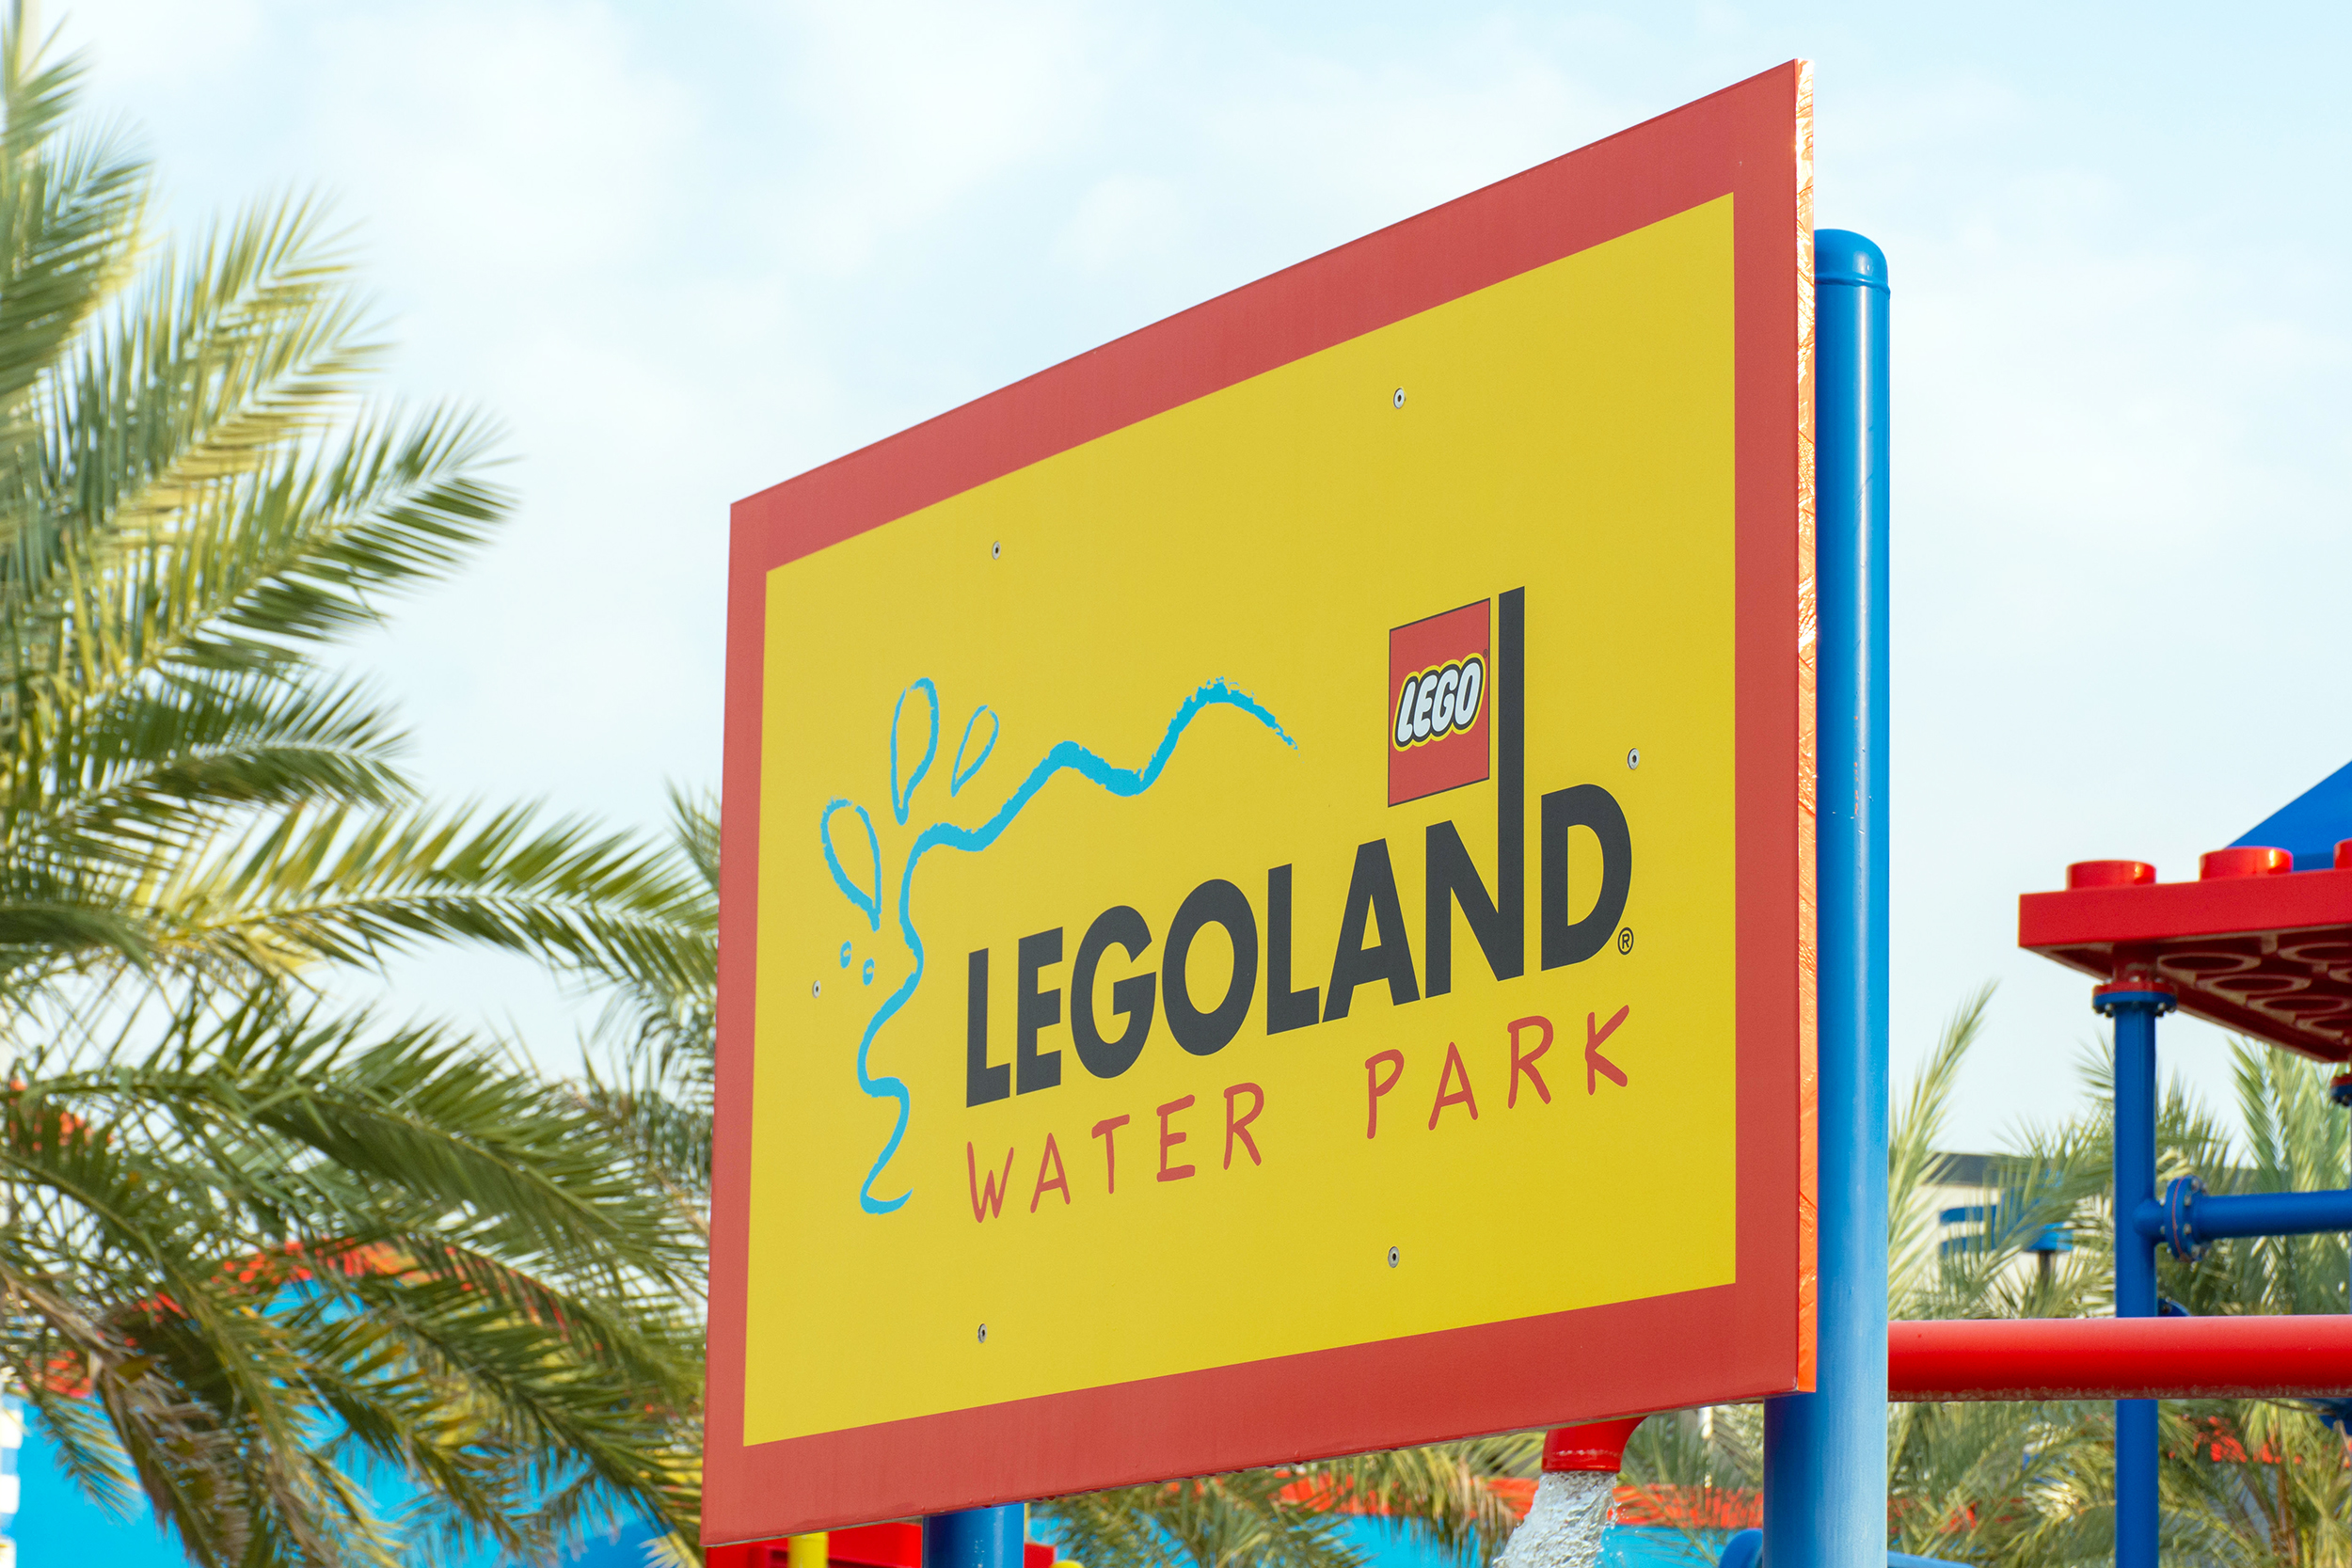 Full details of Europe's first Legoland Water Park ...